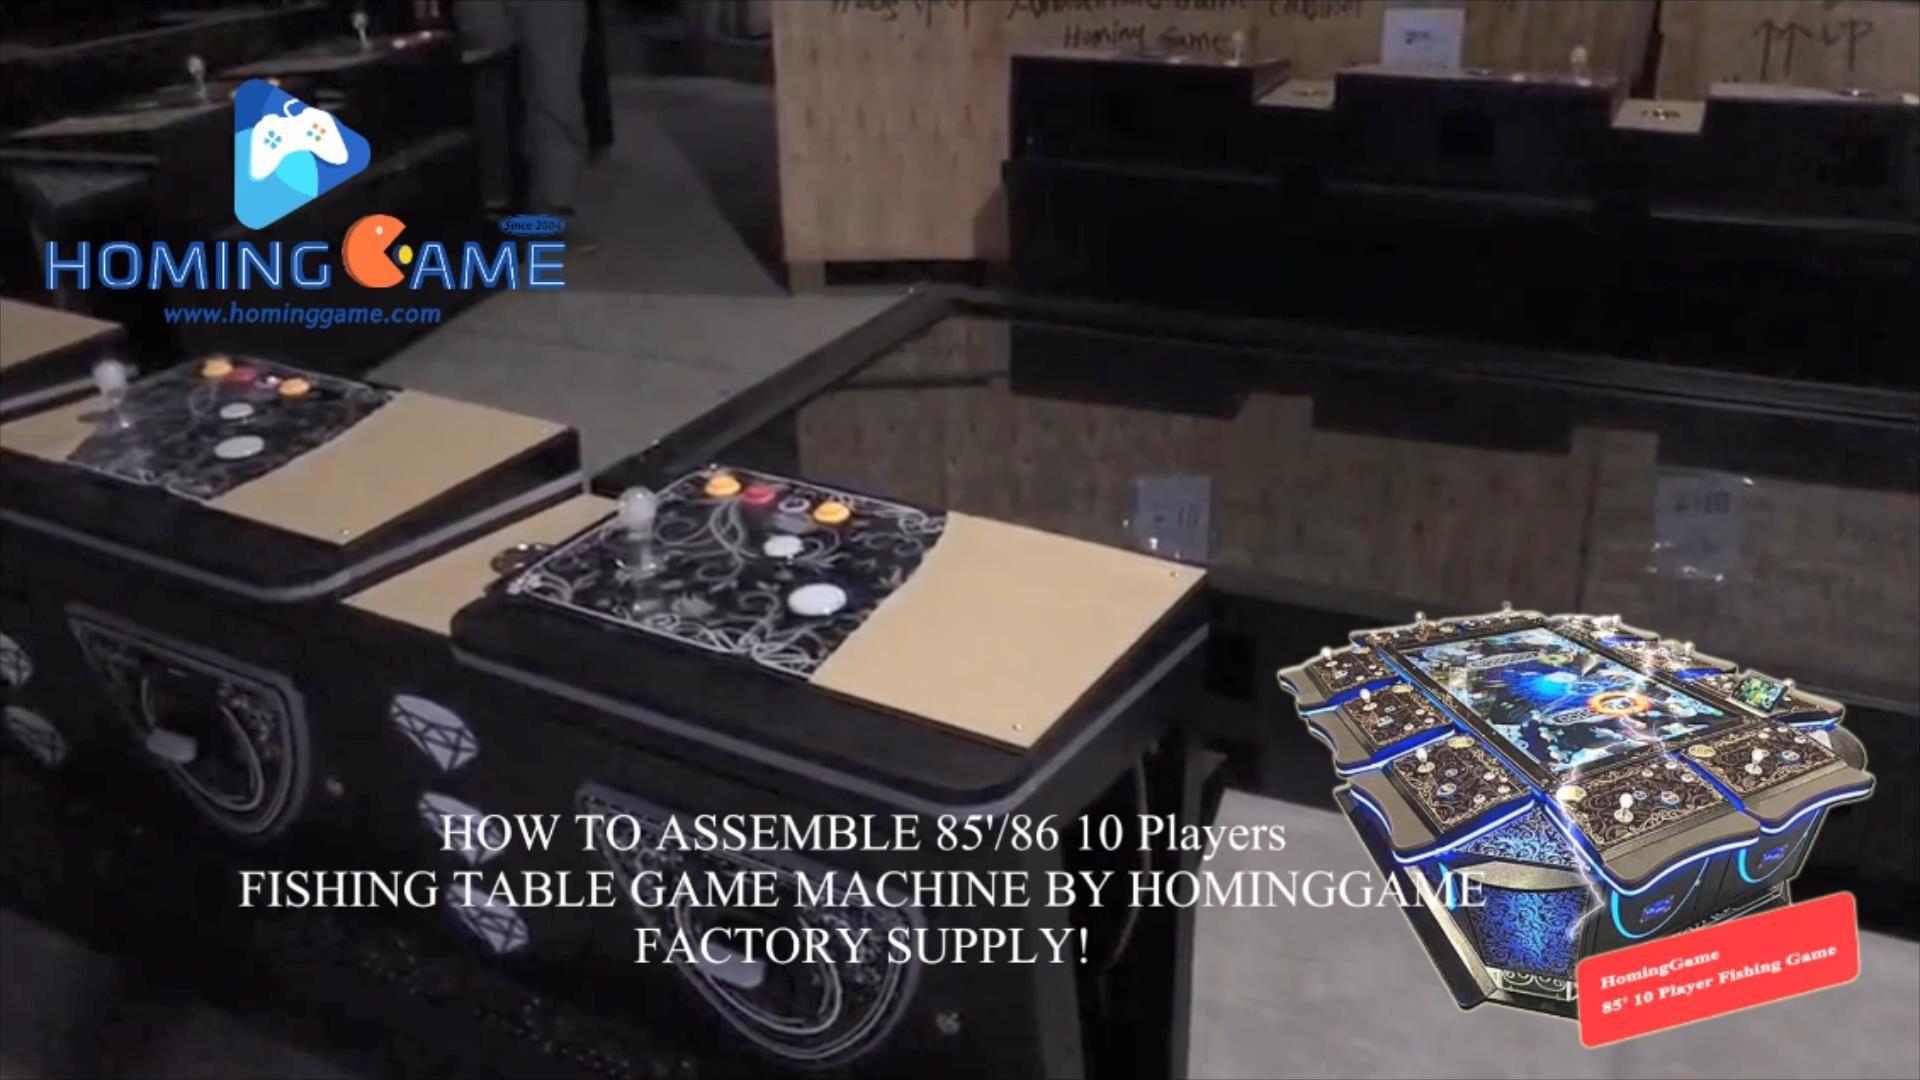 85 10 players fishing table game machine,85